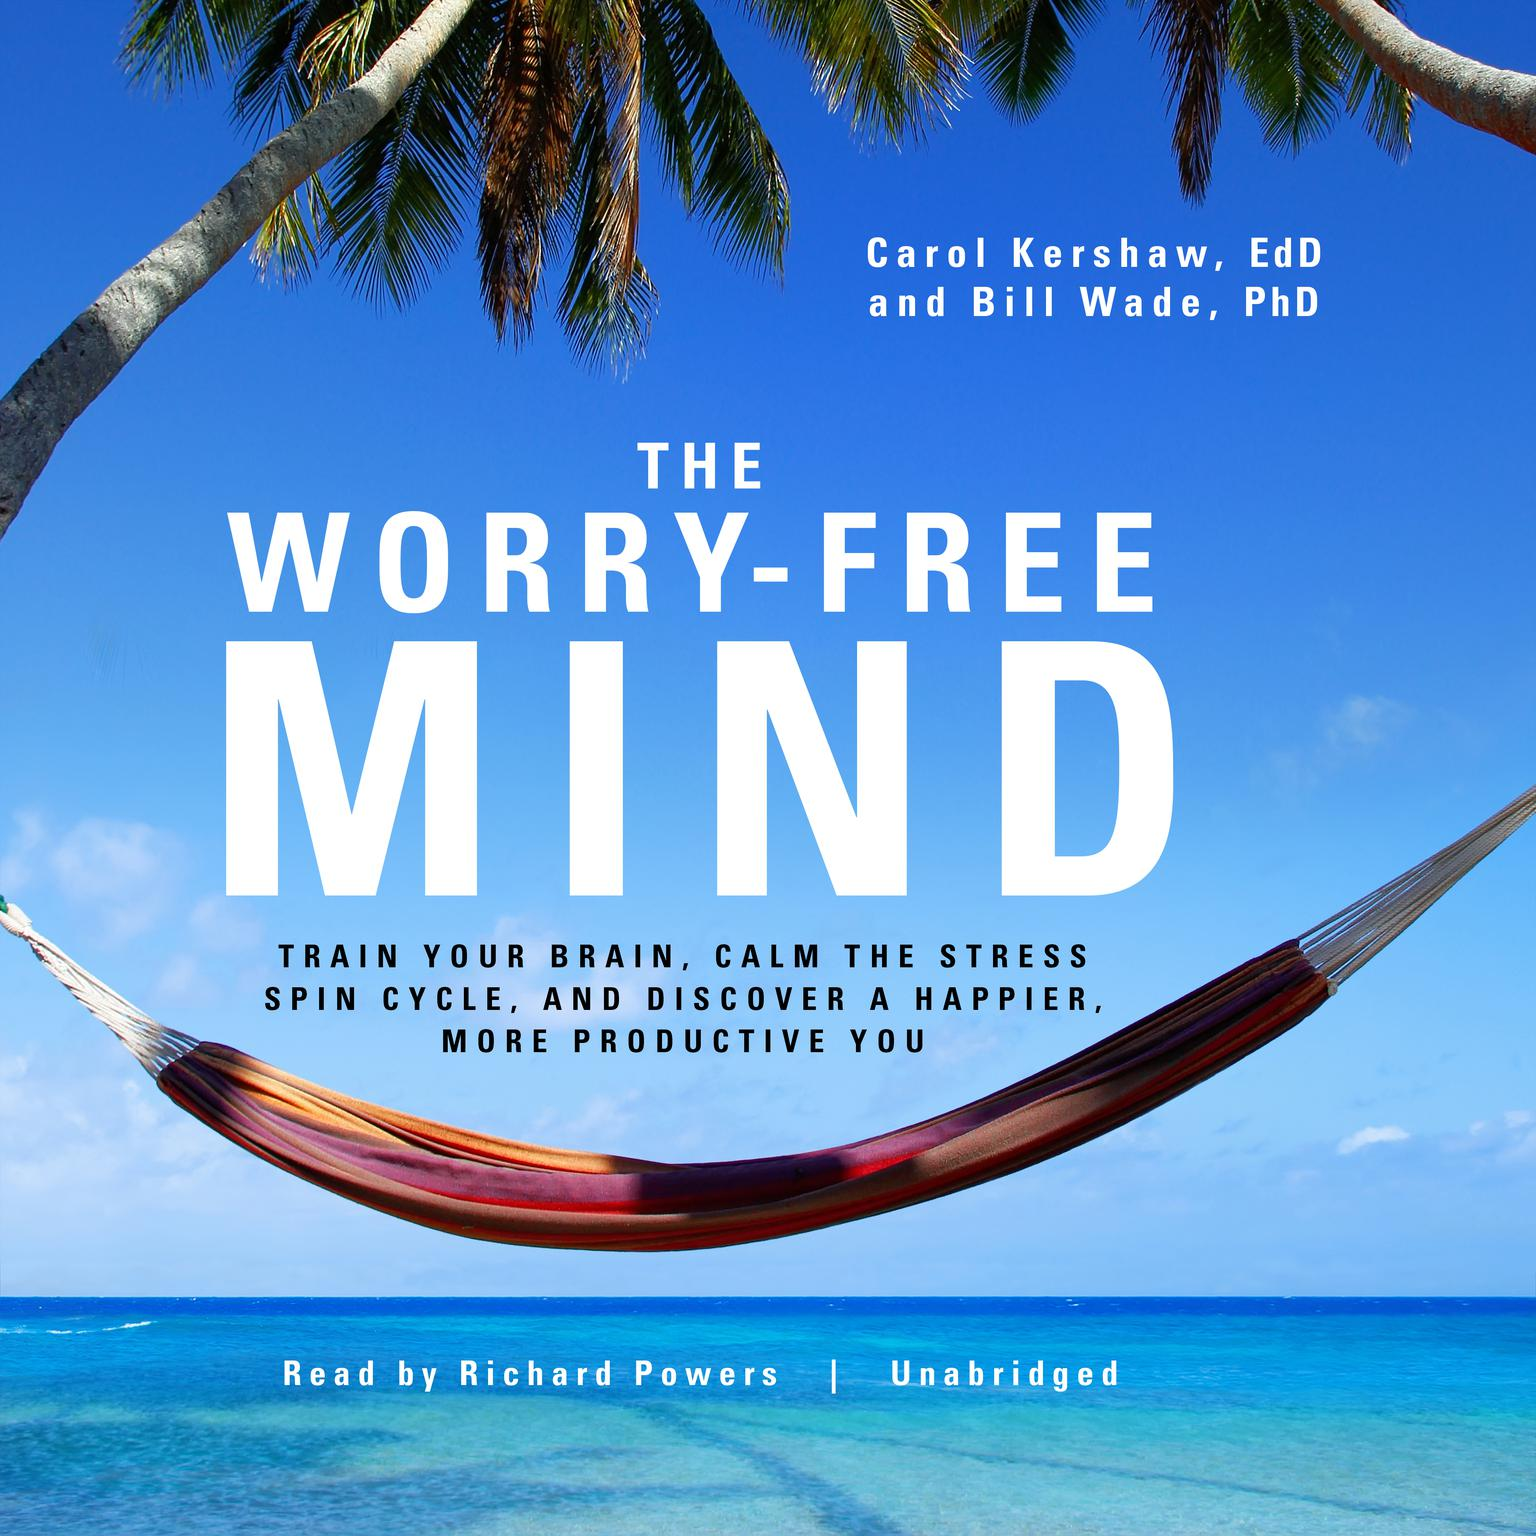 Printable The Worry-Free Mind: Train Your Brain, Calm the Stress Spin Cycle, and Discover a Happier, More Productive You Audiobook Cover Art